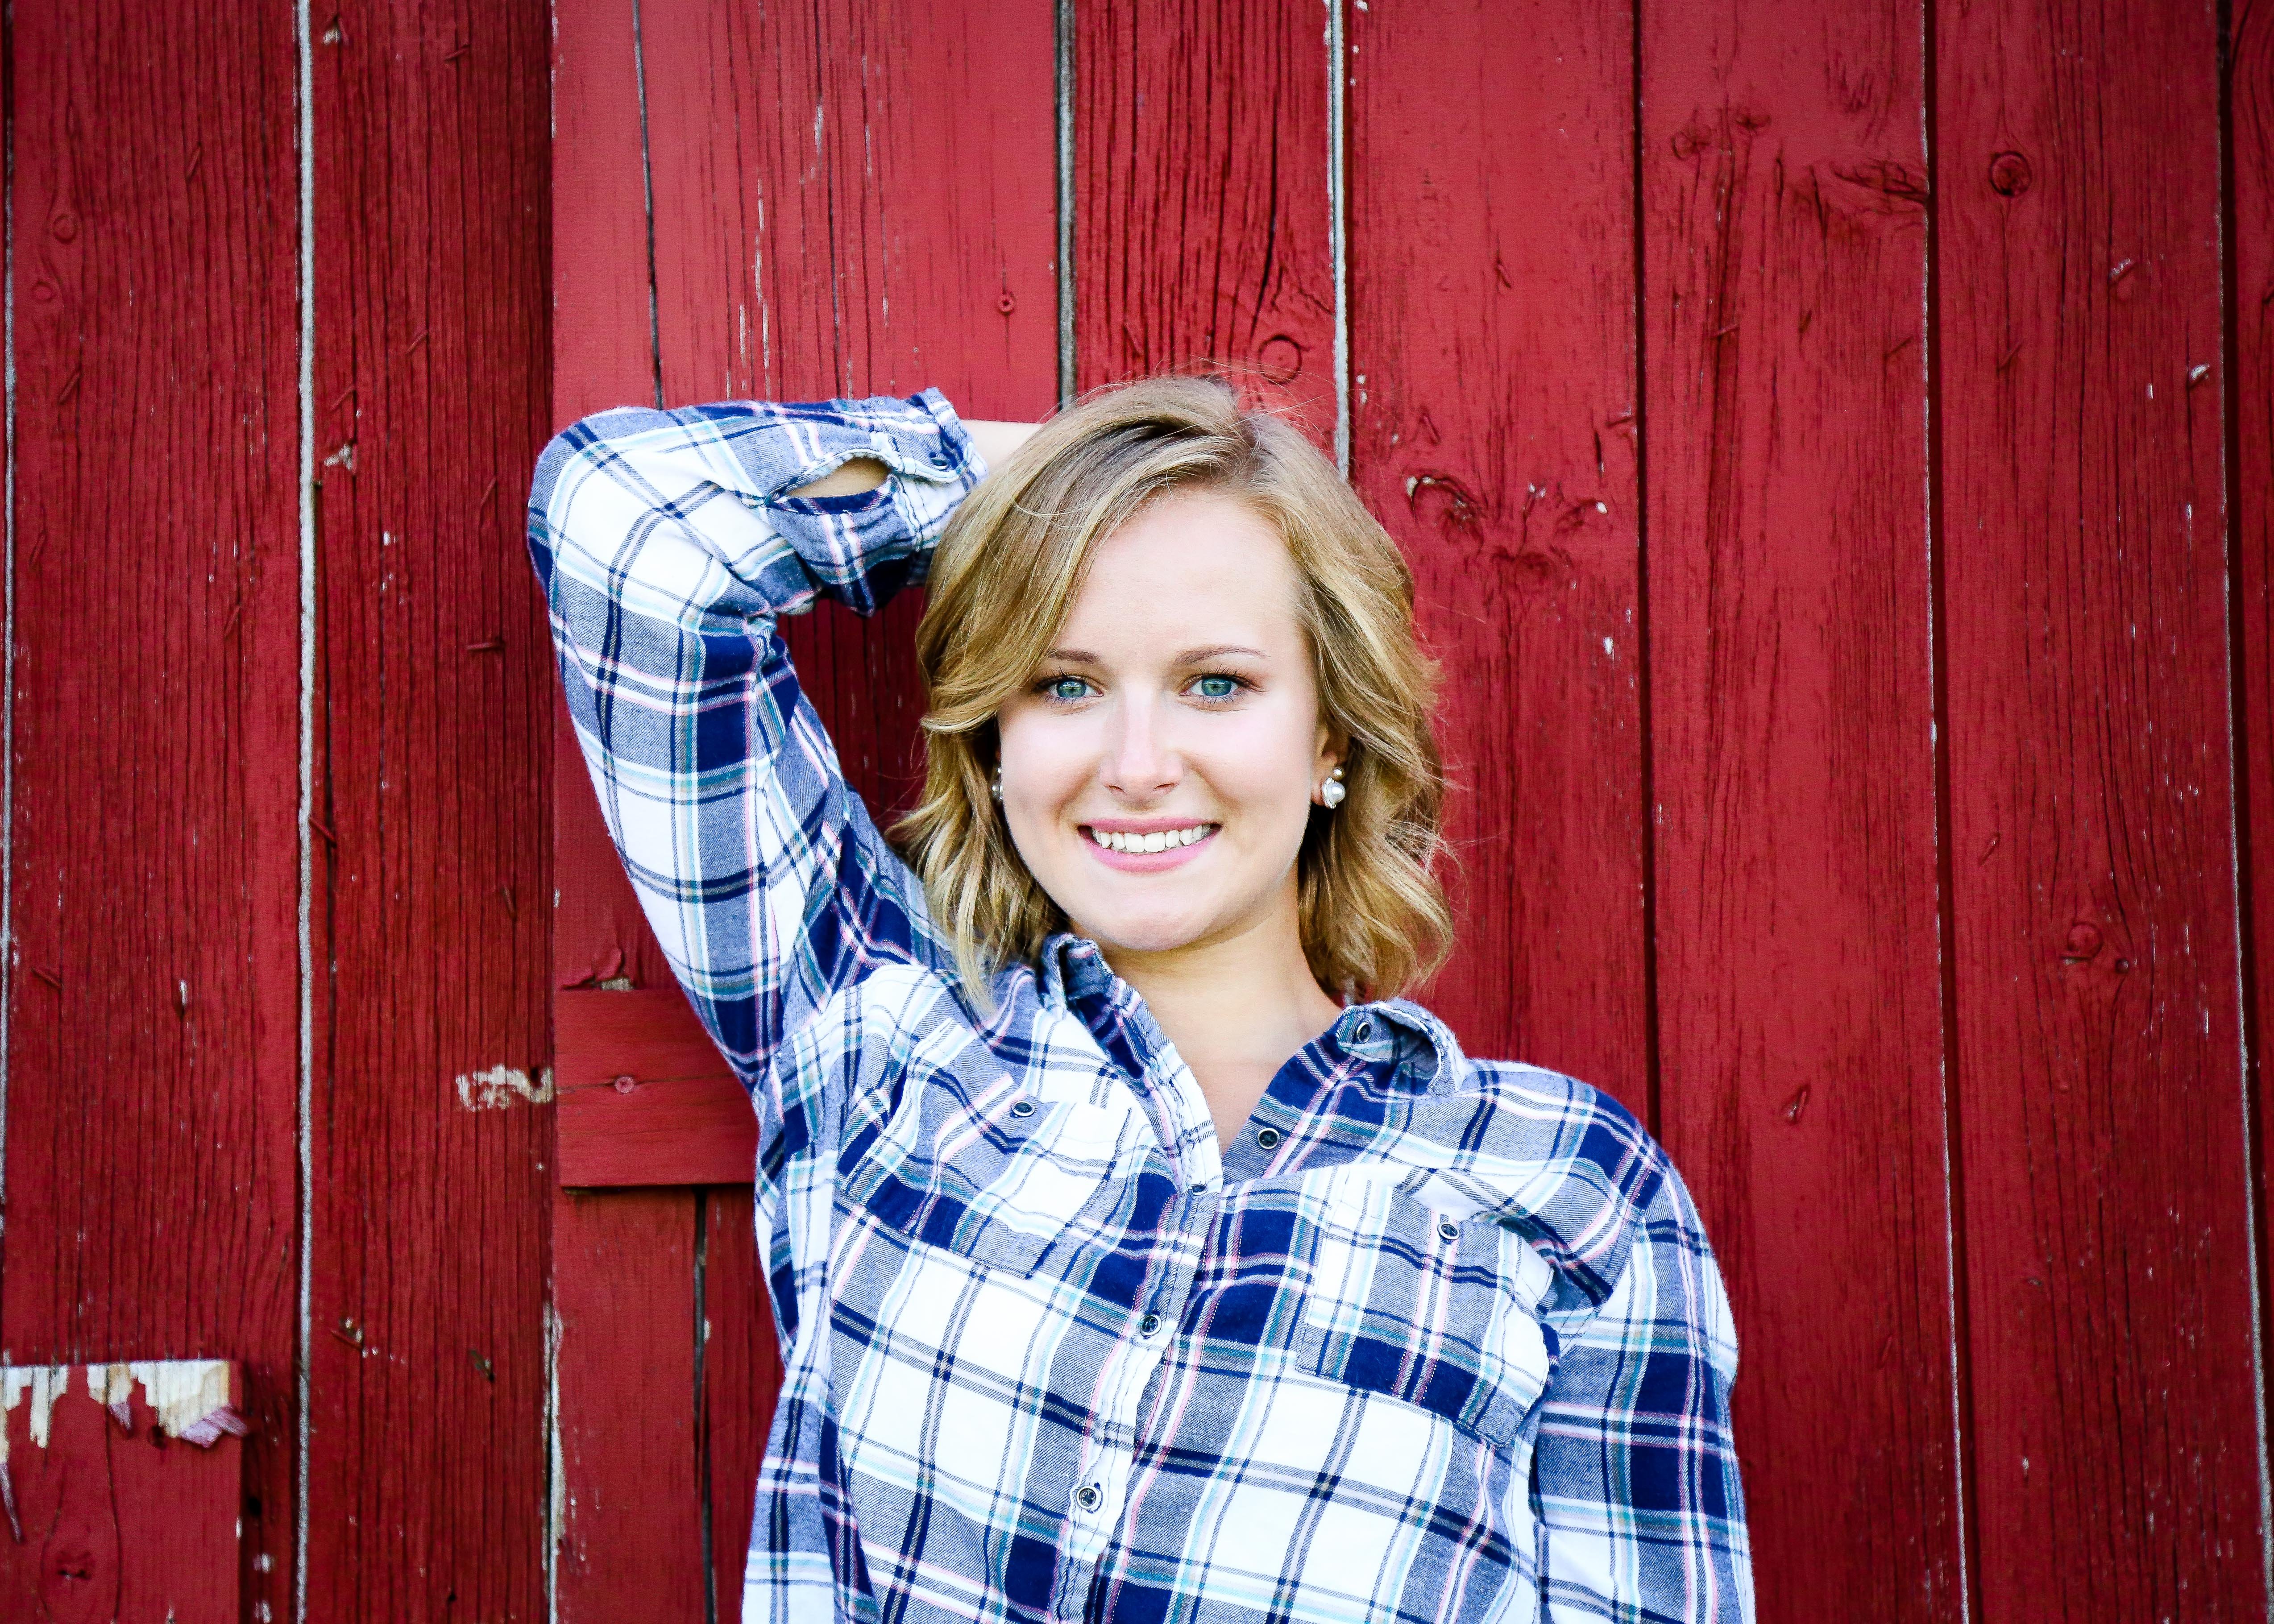 Shelby Gulpker's senior photography session at the Red Barn, located in Grand Rapids, Michigan.